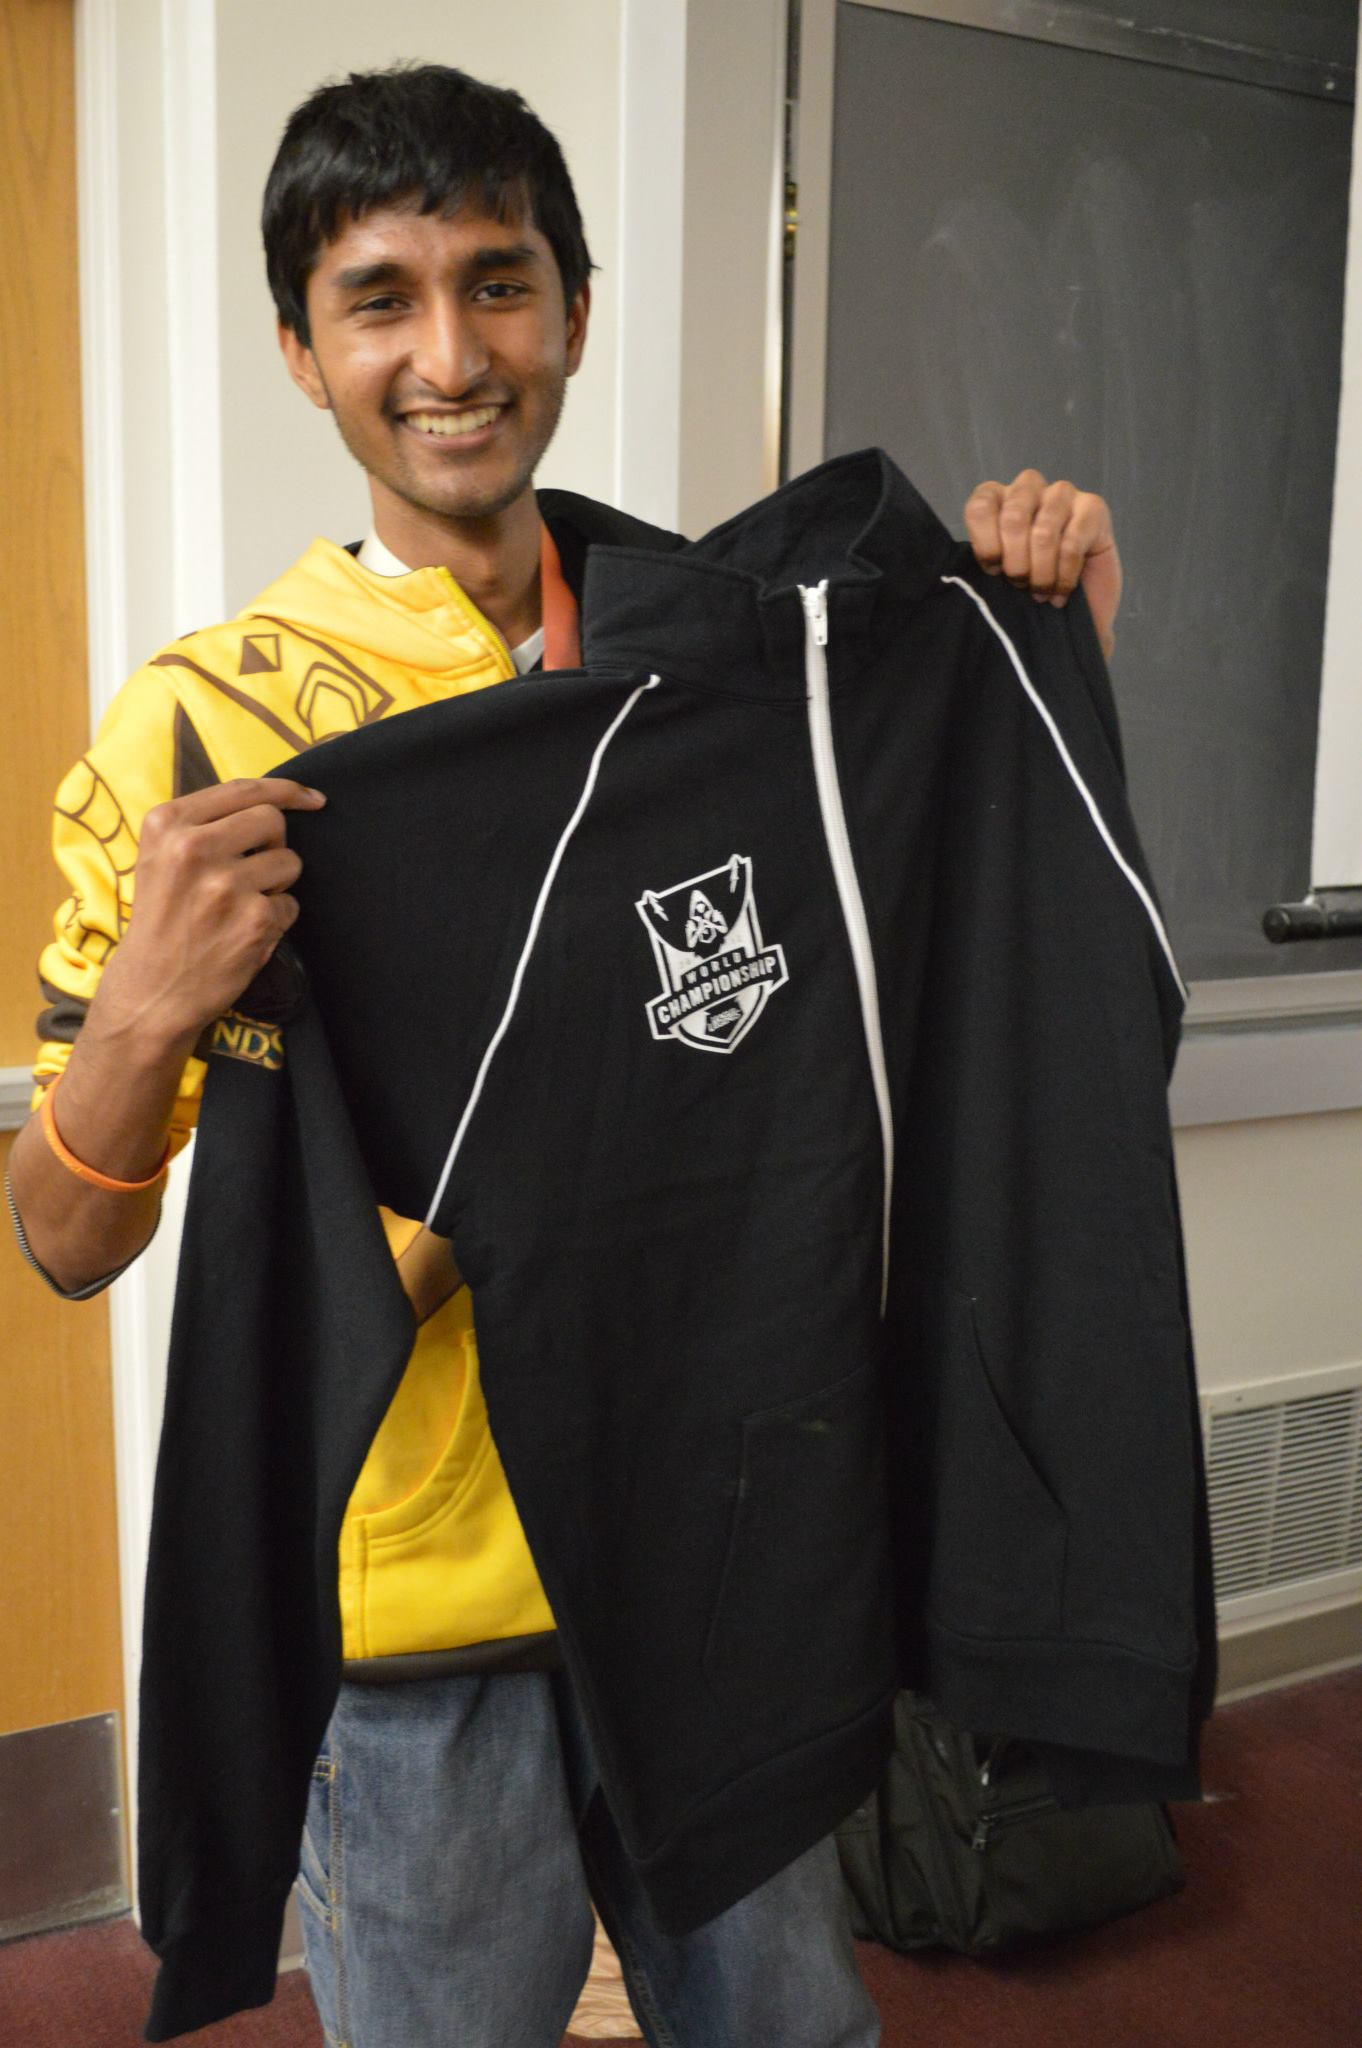 Rizwan Mohammed, a student at the University of utah studying computer science, heads the UofU League of Legends club. (Courtesy Rizwan Mohammed)